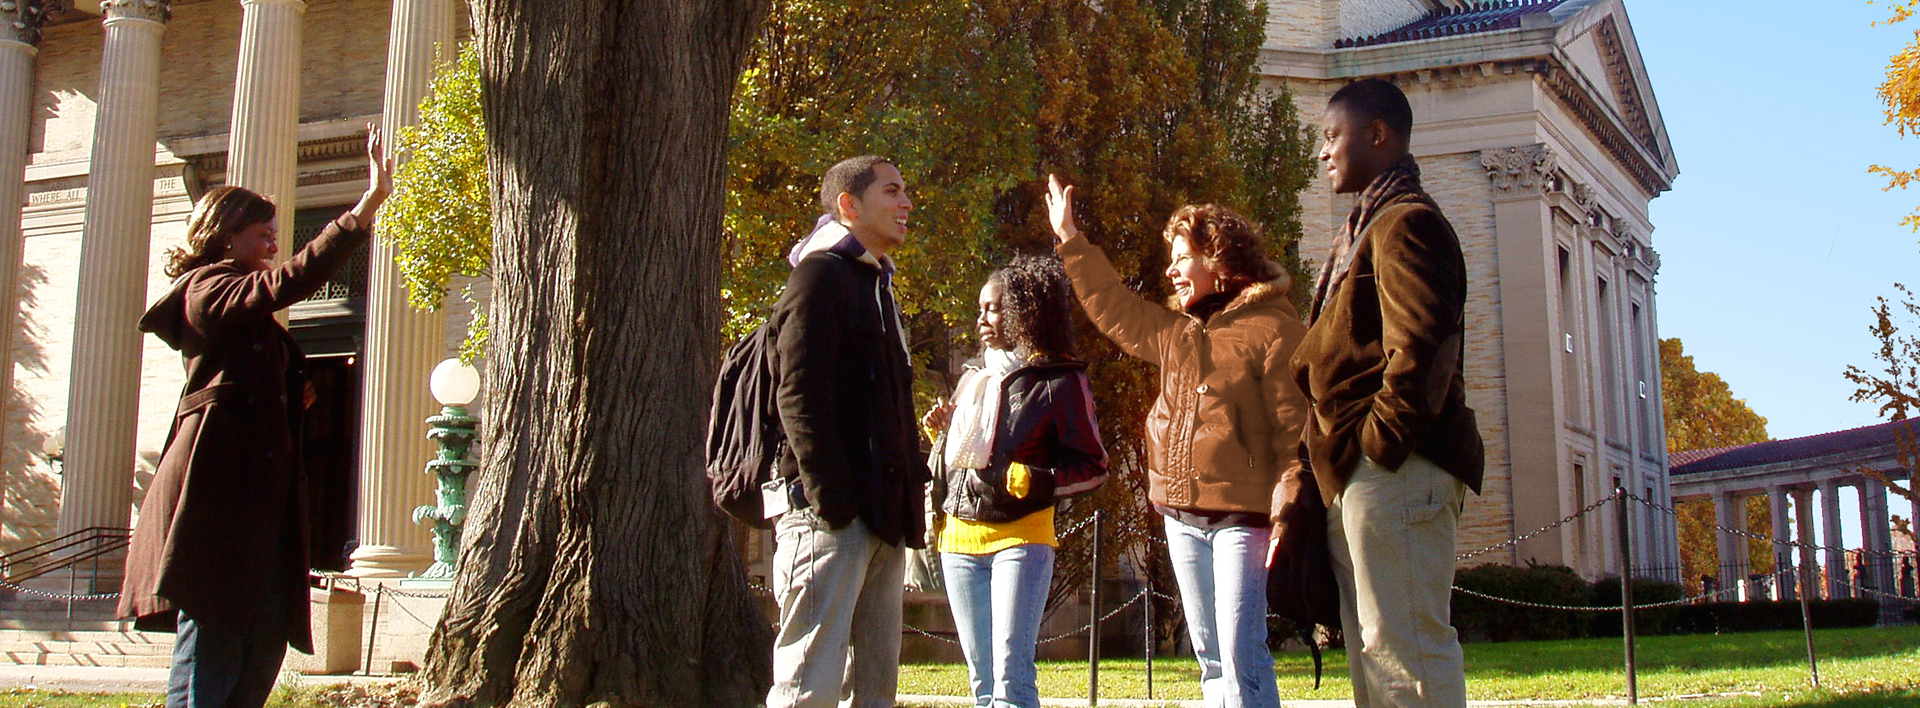 Students on the bronx community college campus